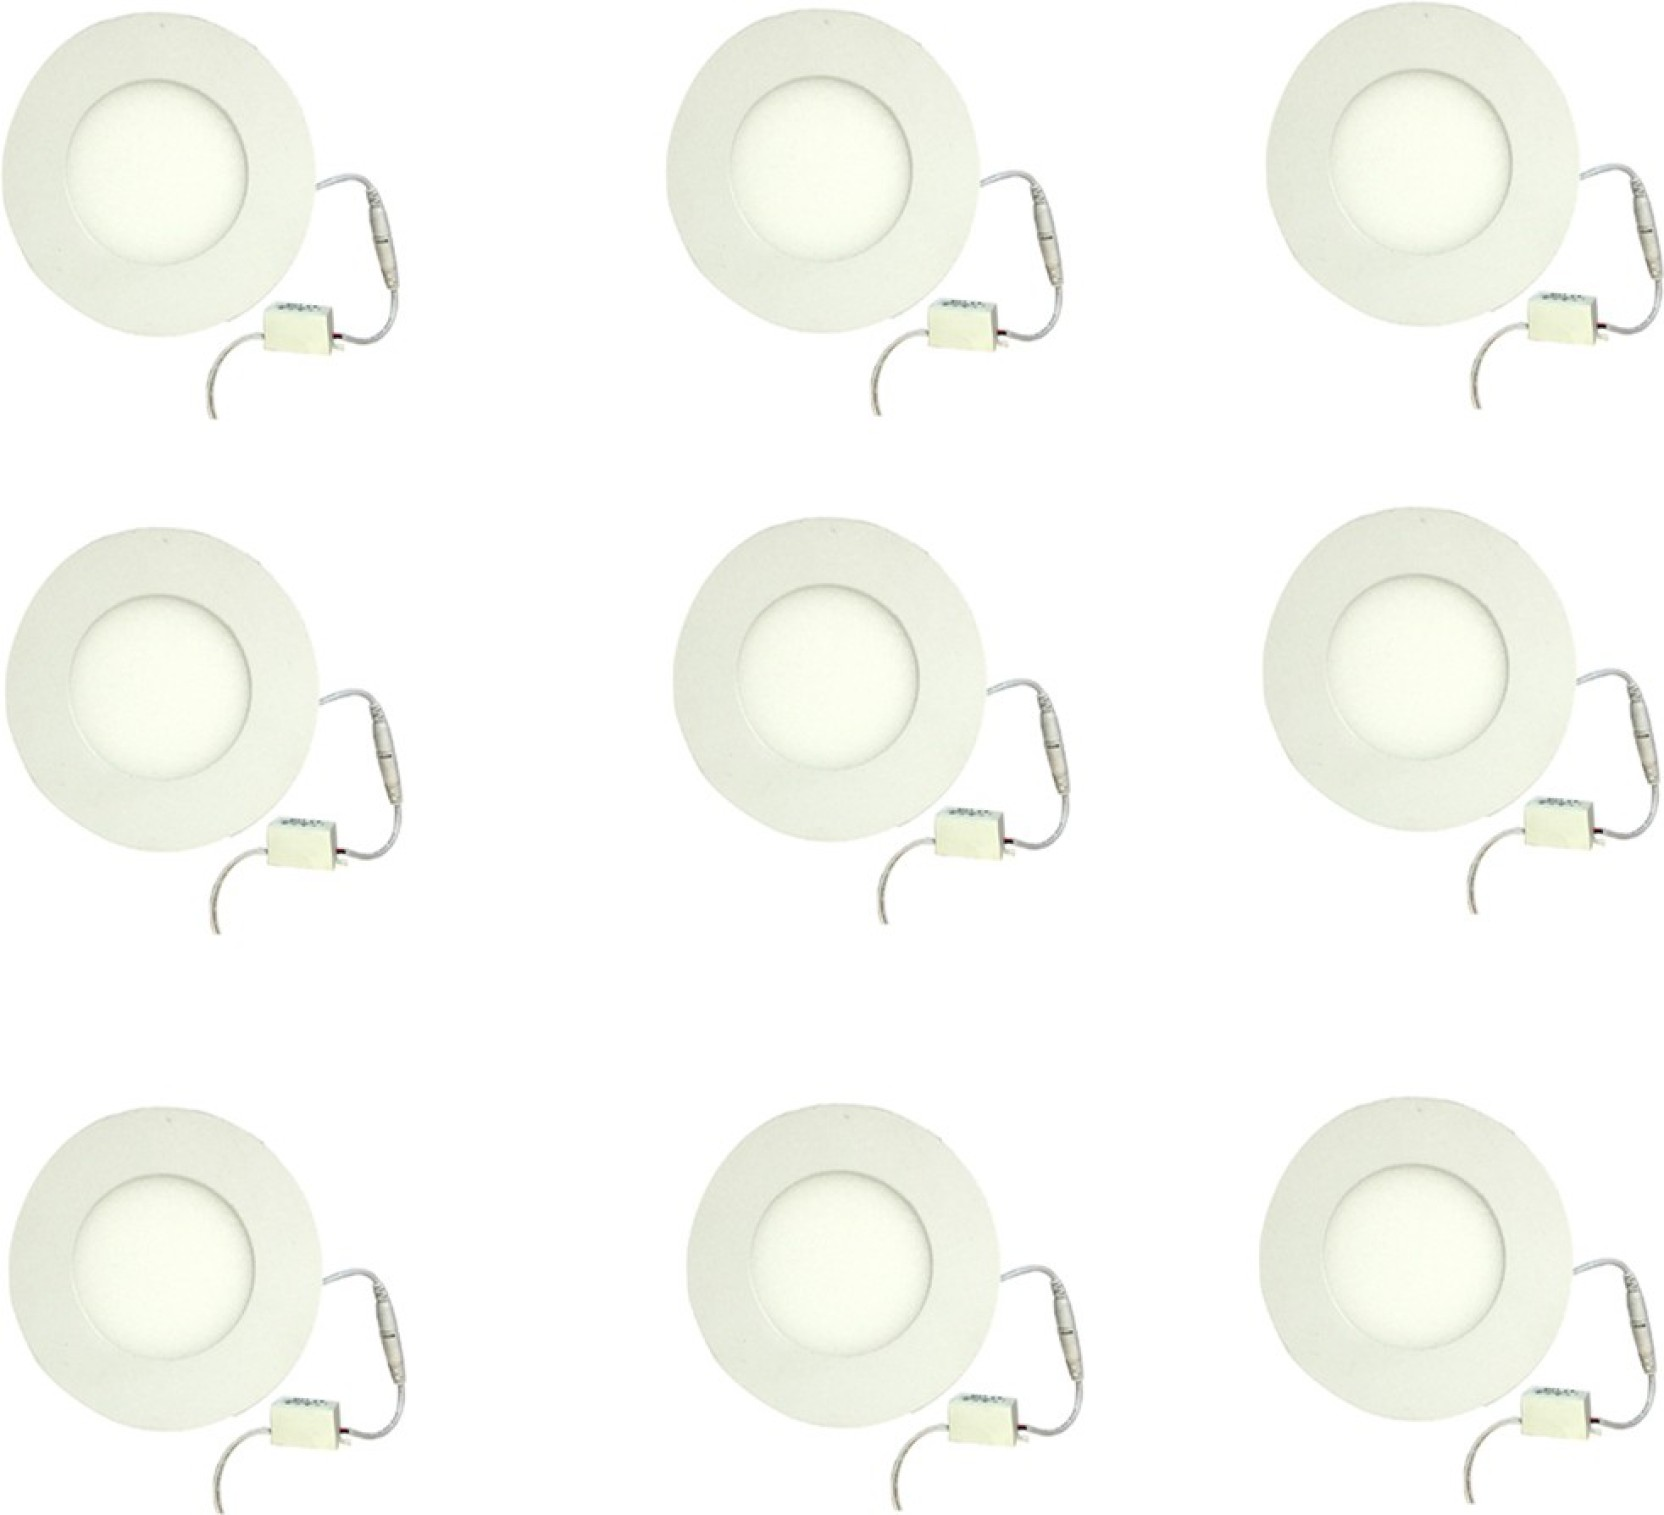 Galaxy 3 Watt Led Panel Light Round Cool White With 2 Years Warranty Set Of 9 Recessed Ceiling